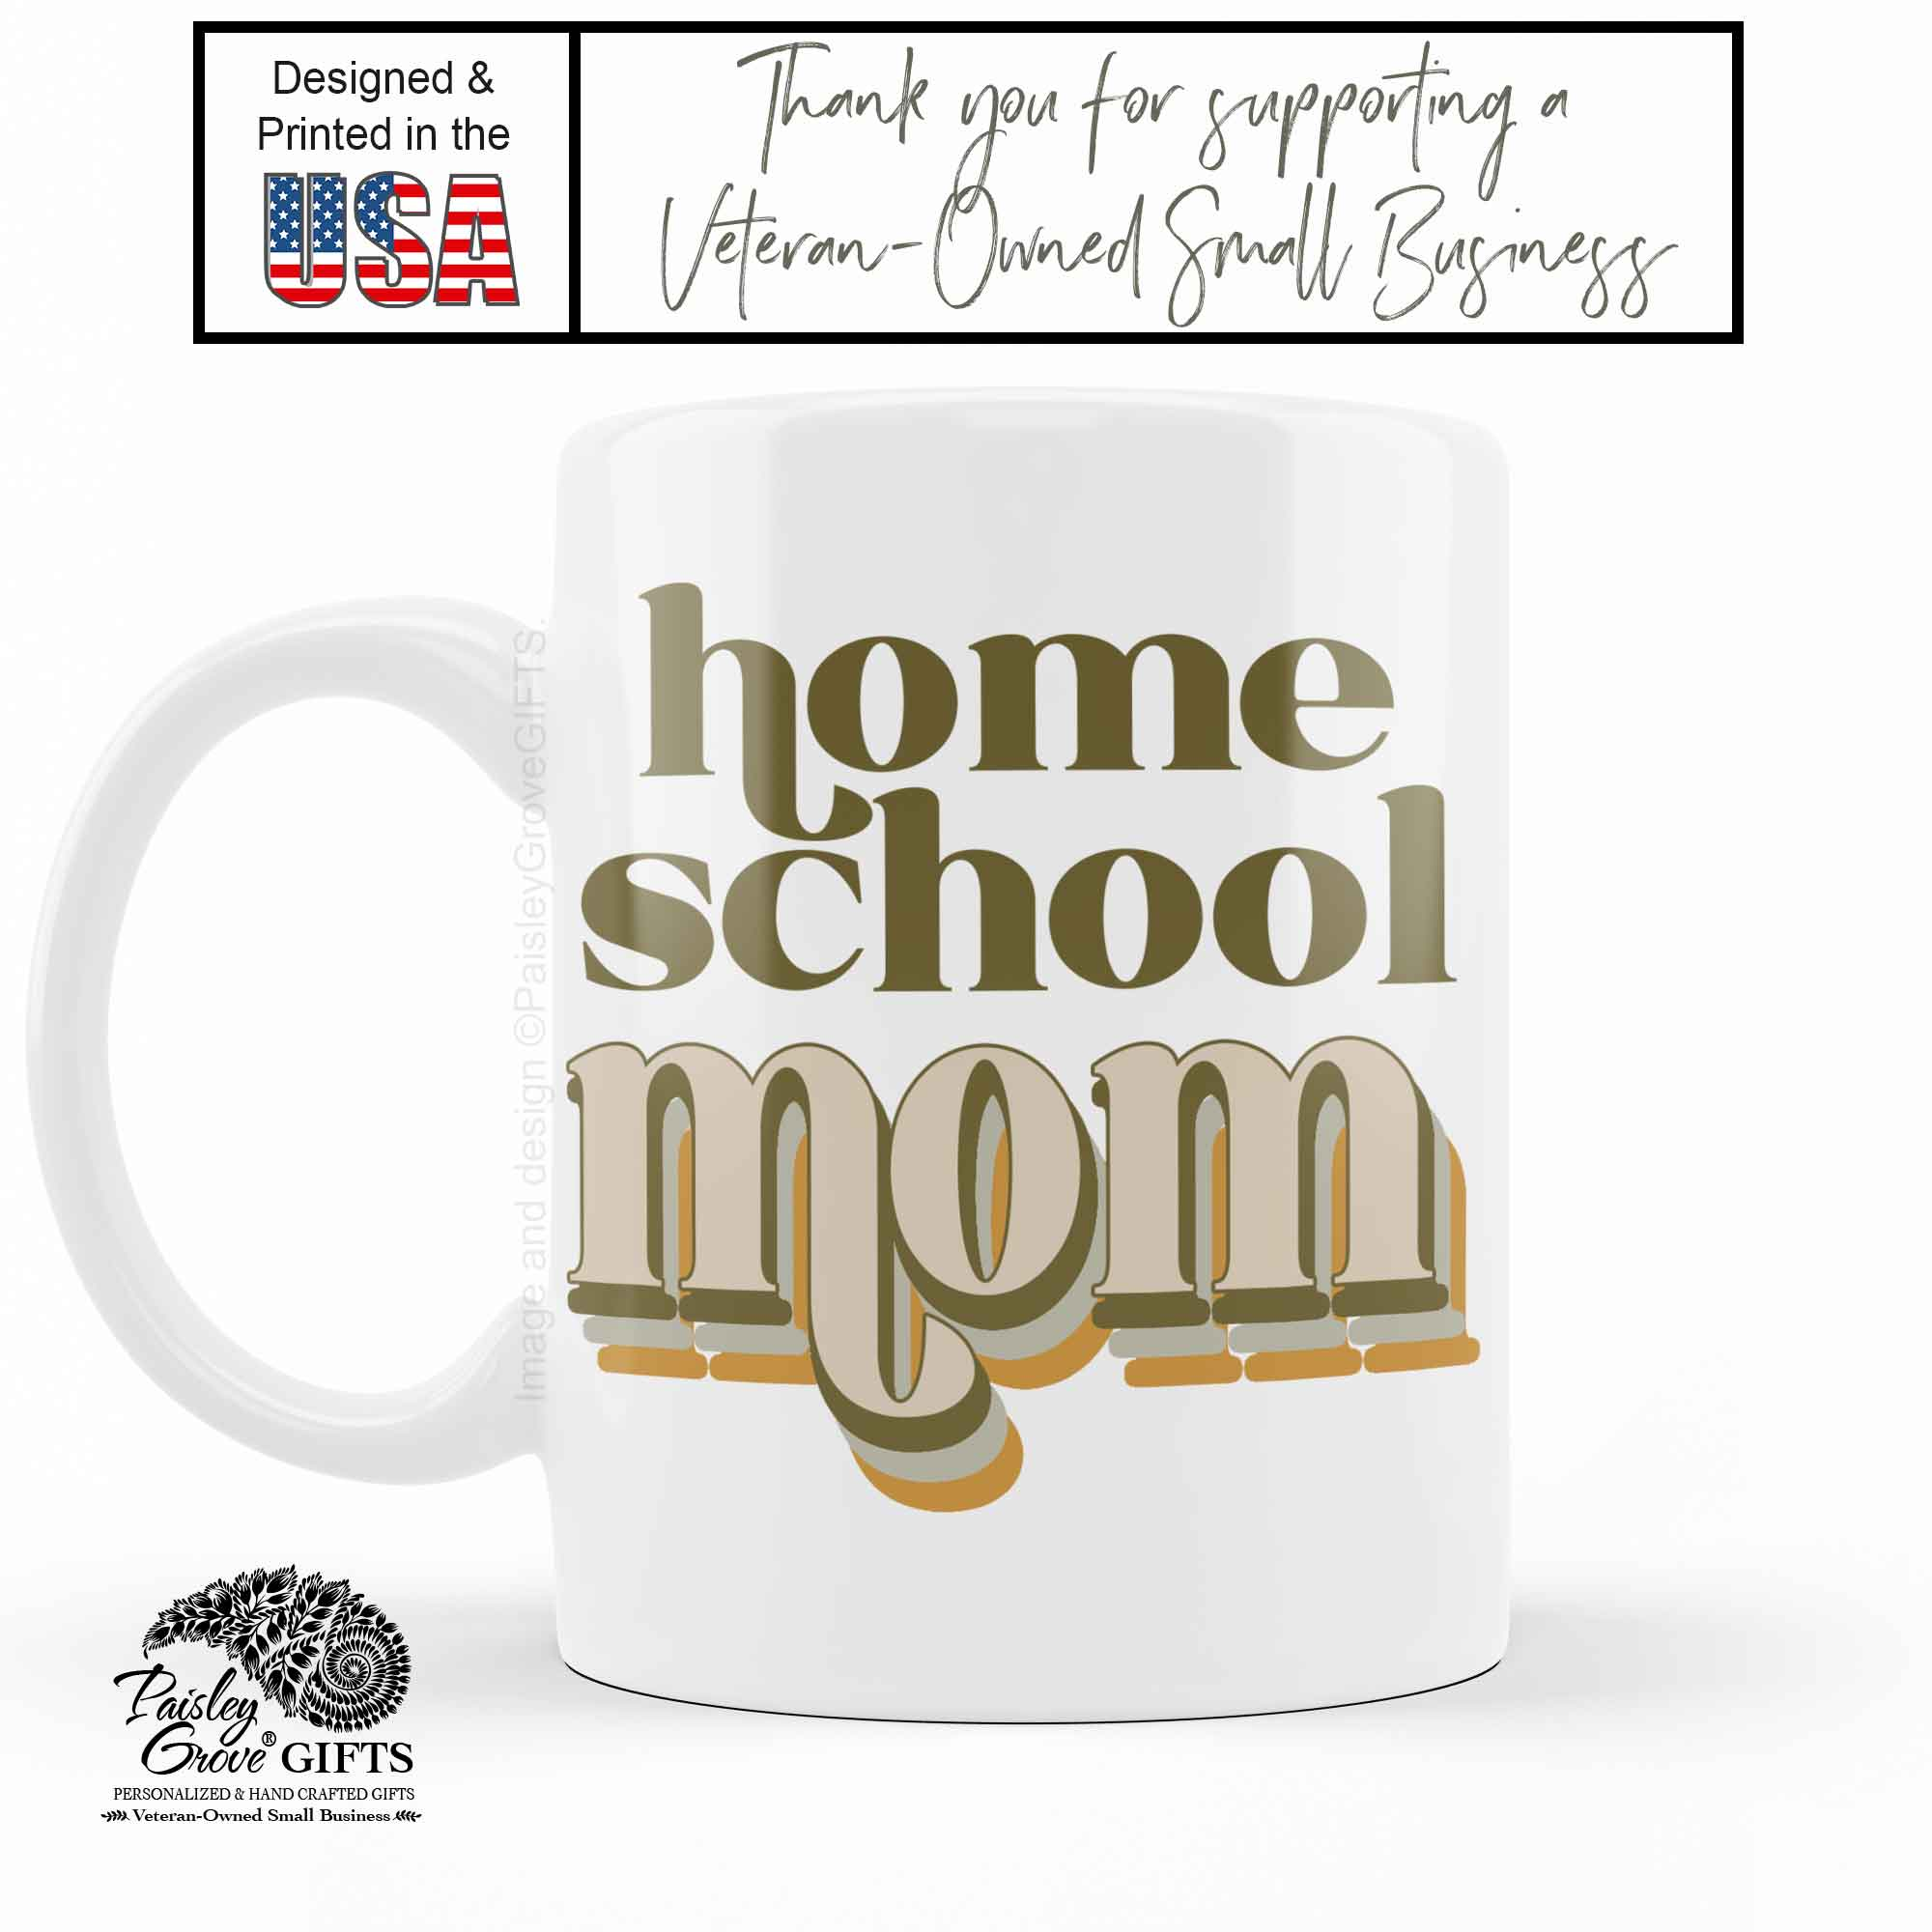 CopyrightPaisleyGroveGIFTS P001g Original art by PaisleyGroveGIFTS Retro Home school Mom Ceramic Coffee Mug